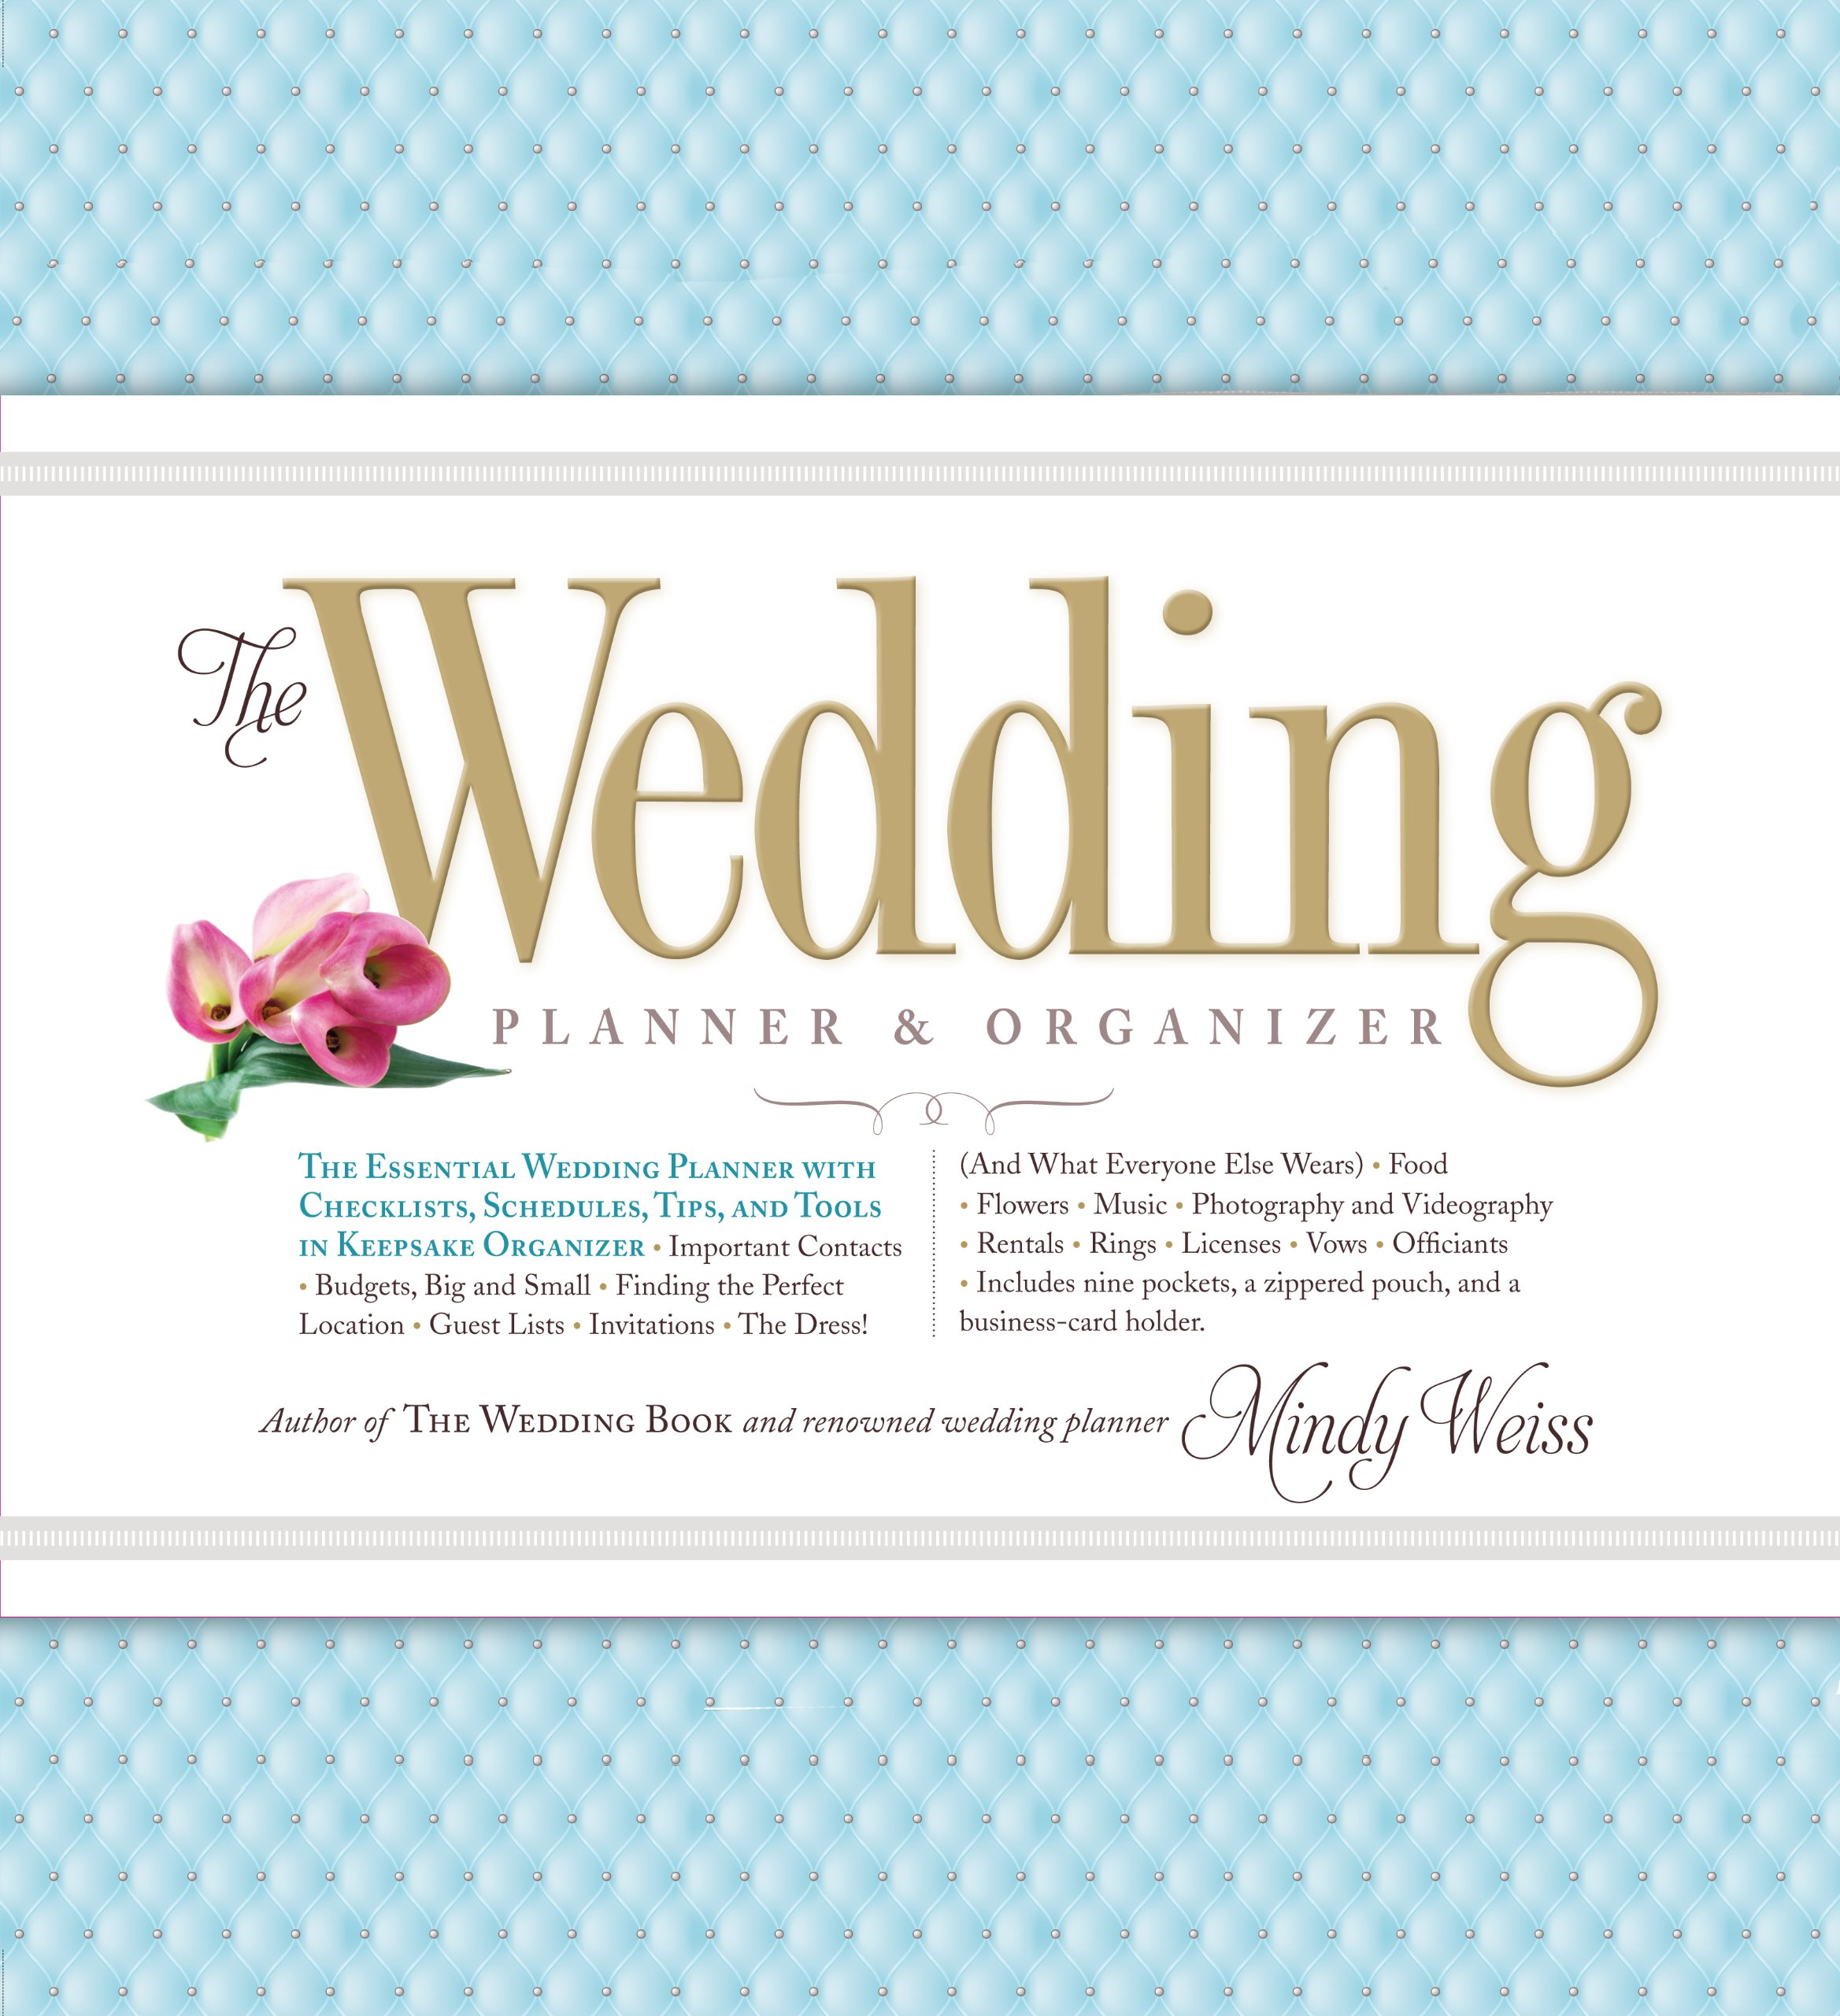 The wedding planner organizer mindy weiss 9780761165972 amazon the wedding planner organizer mindy weiss 9780761165972 amazon books solutioingenieria Image collections